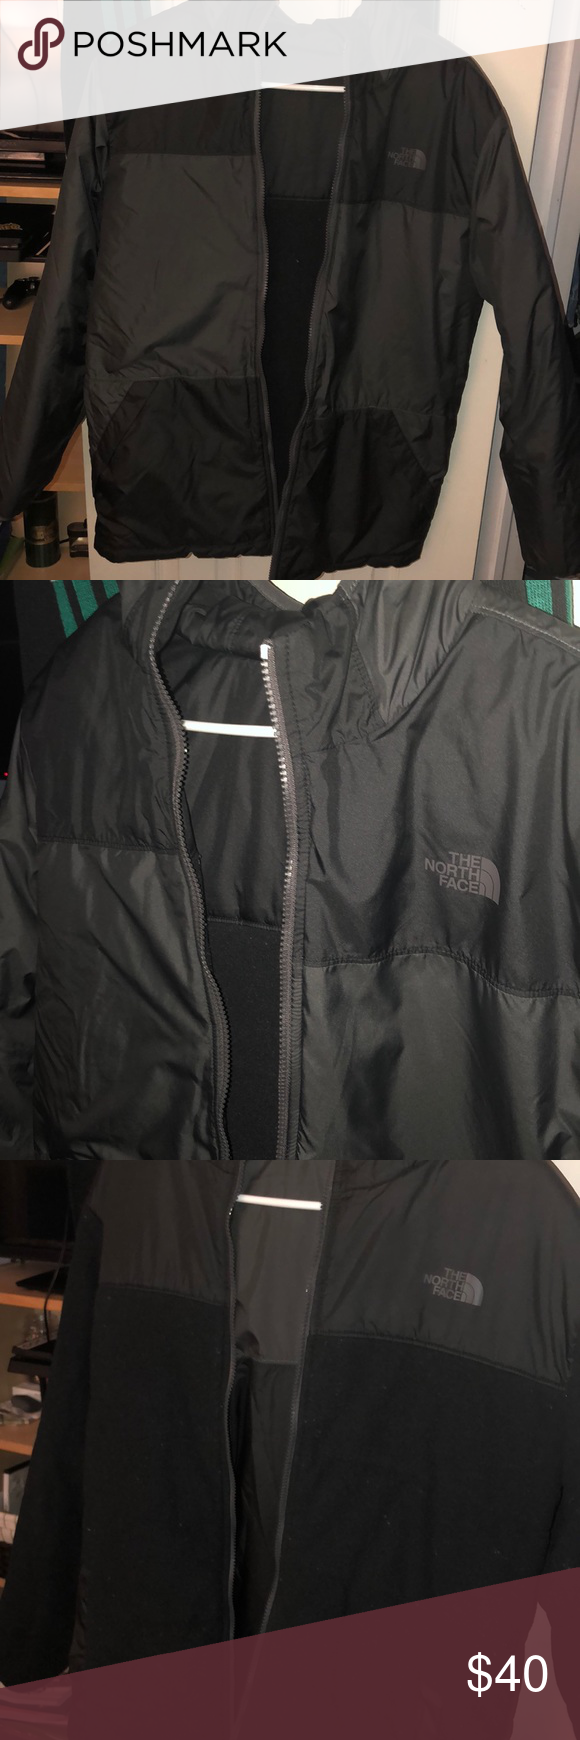 North Face Double Sided Jacket North Face Jacket Jackets The North Face [ 1740 x 580 Pixel ]